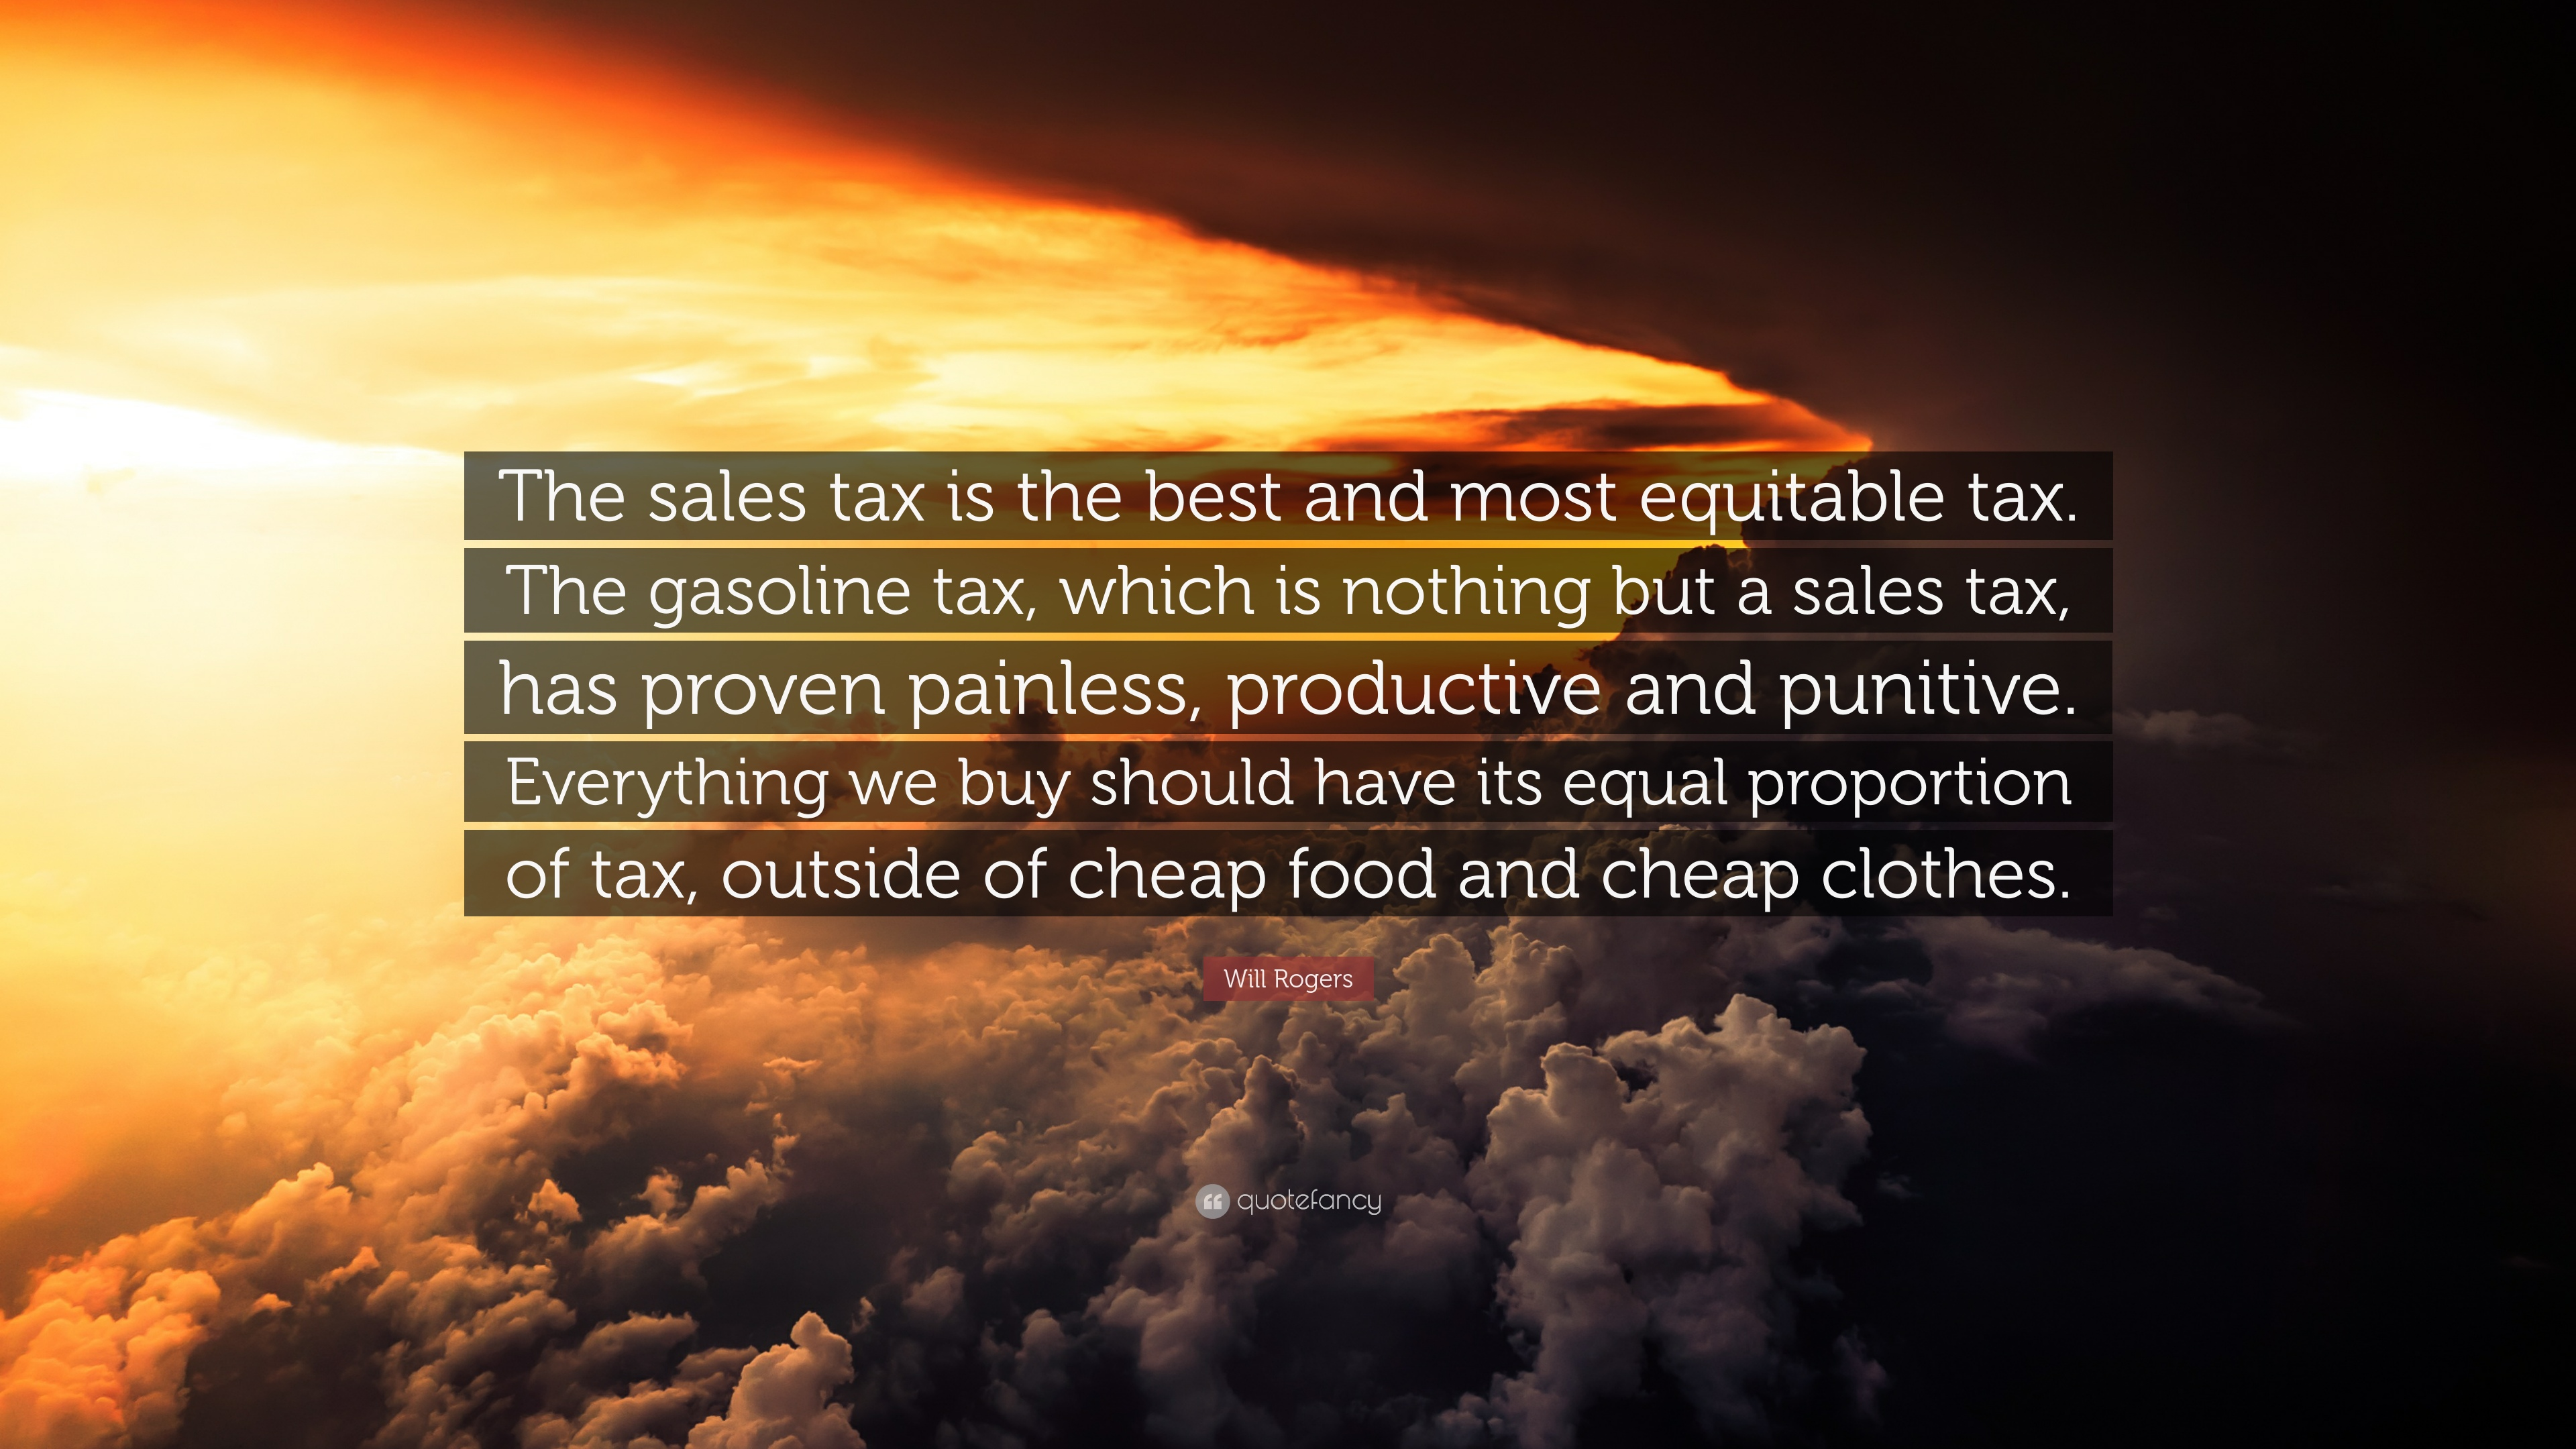 will rogers quote the sales tax is the best and most equitable tax